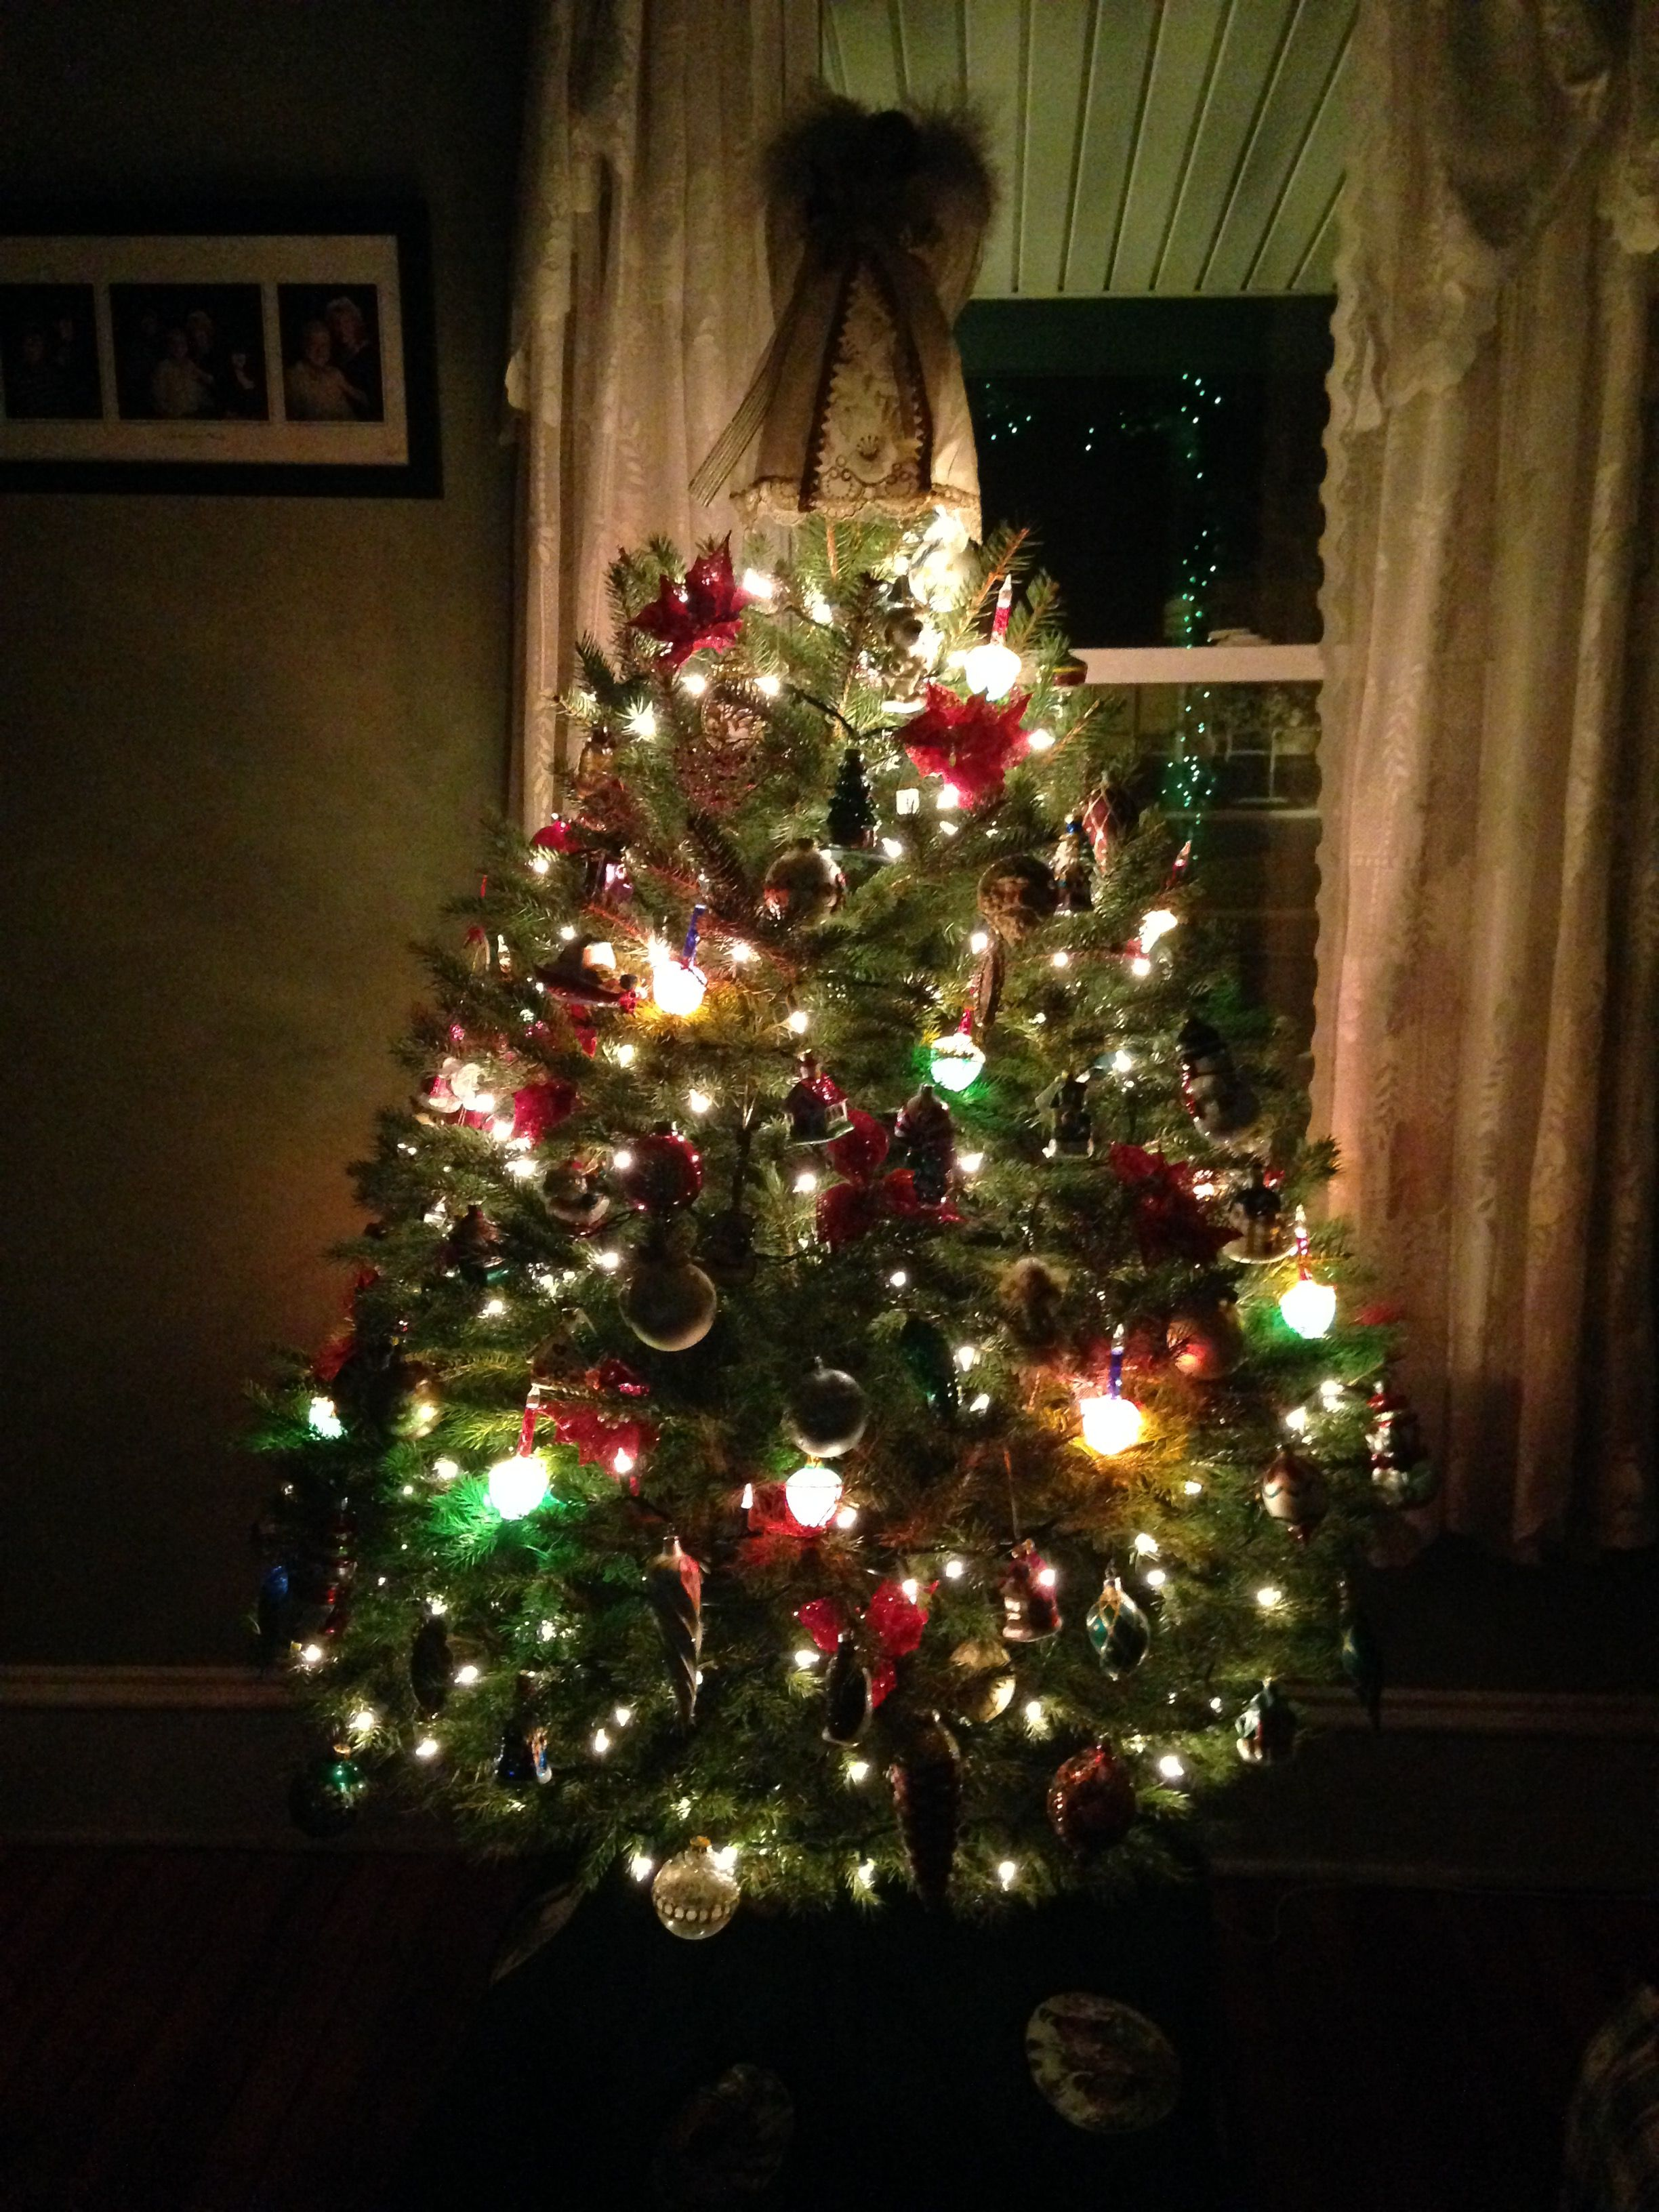 Pin by Wendy Anderson on Family fun and games Christmas